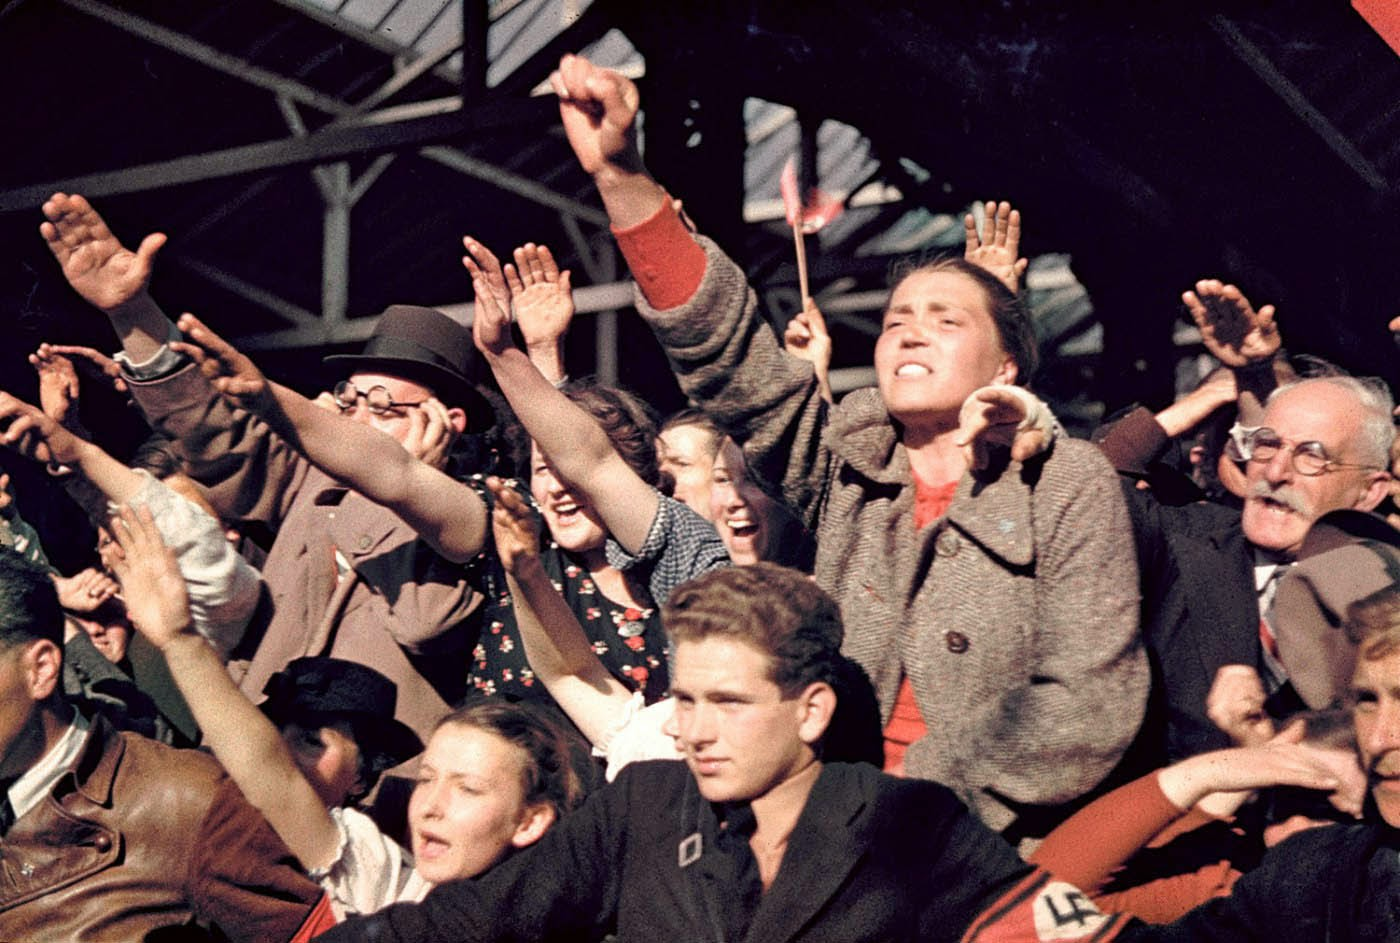 Crowds cheering Adolf Hitler's campaign to unite Austria and Germany, 1938.